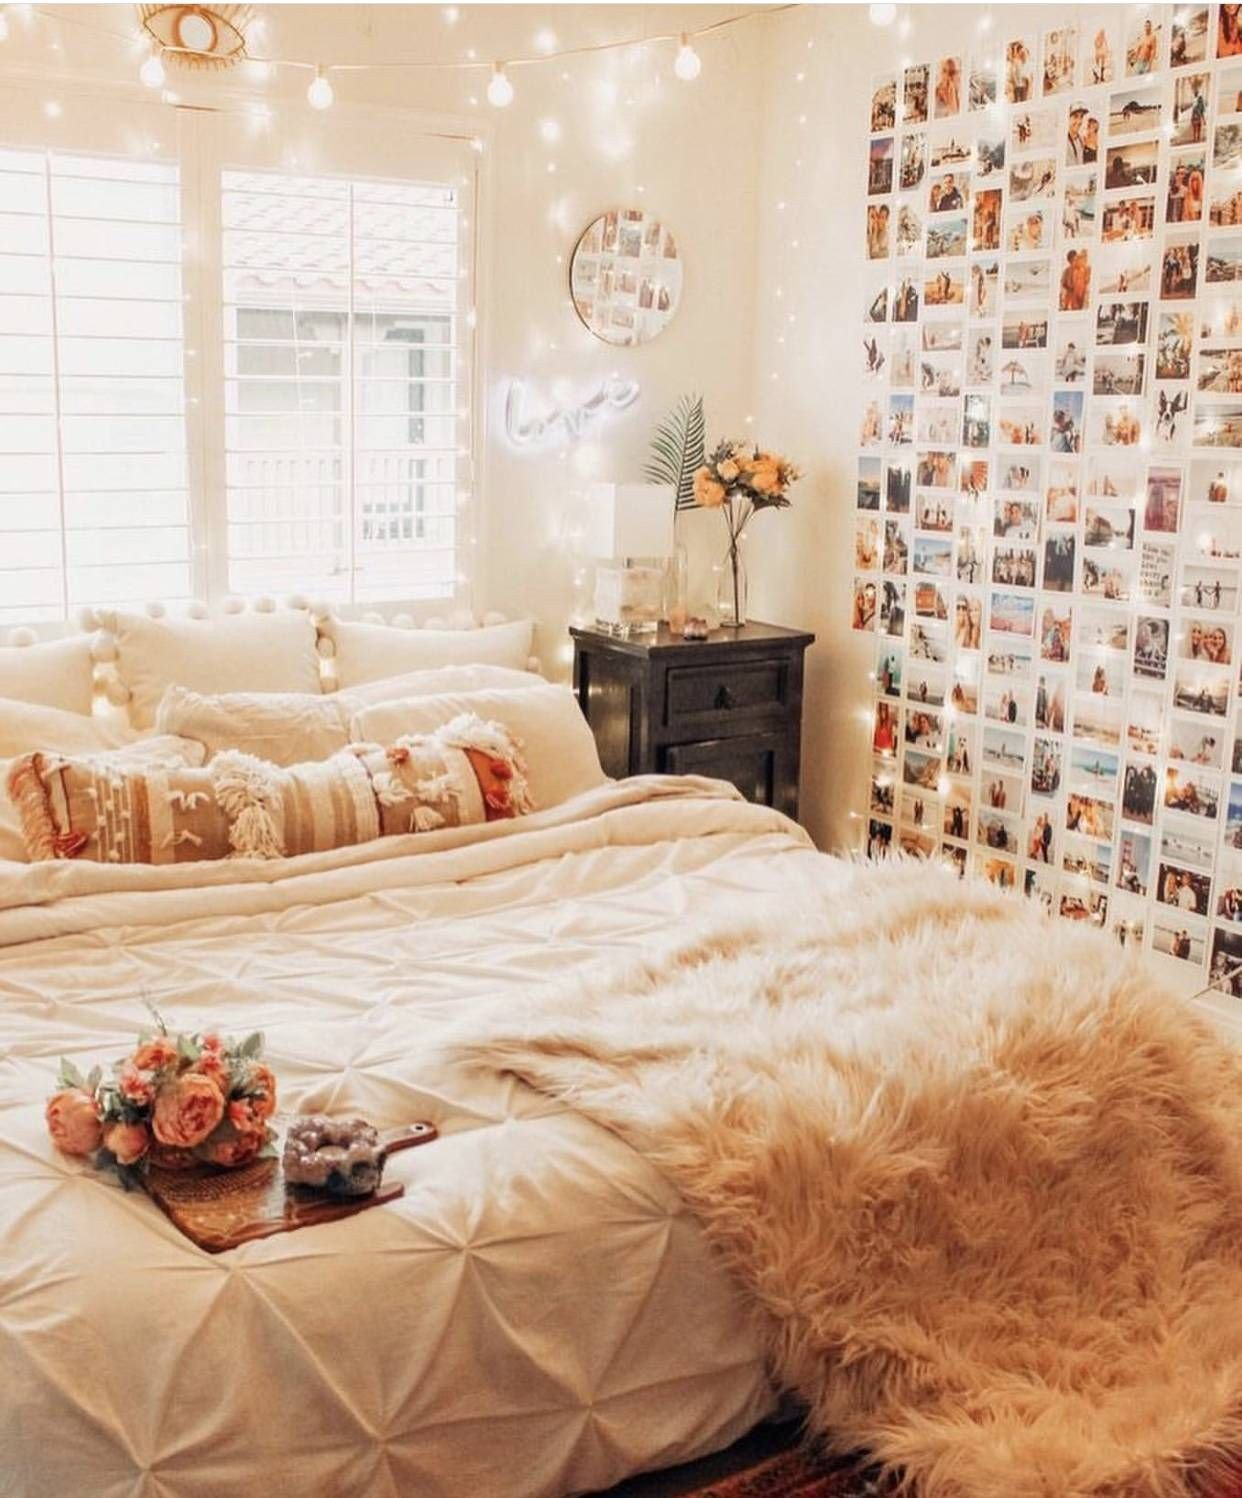 Space Decor for Bedroom New Vsco Decor Ideas Must Have Decor for A Vsco Room